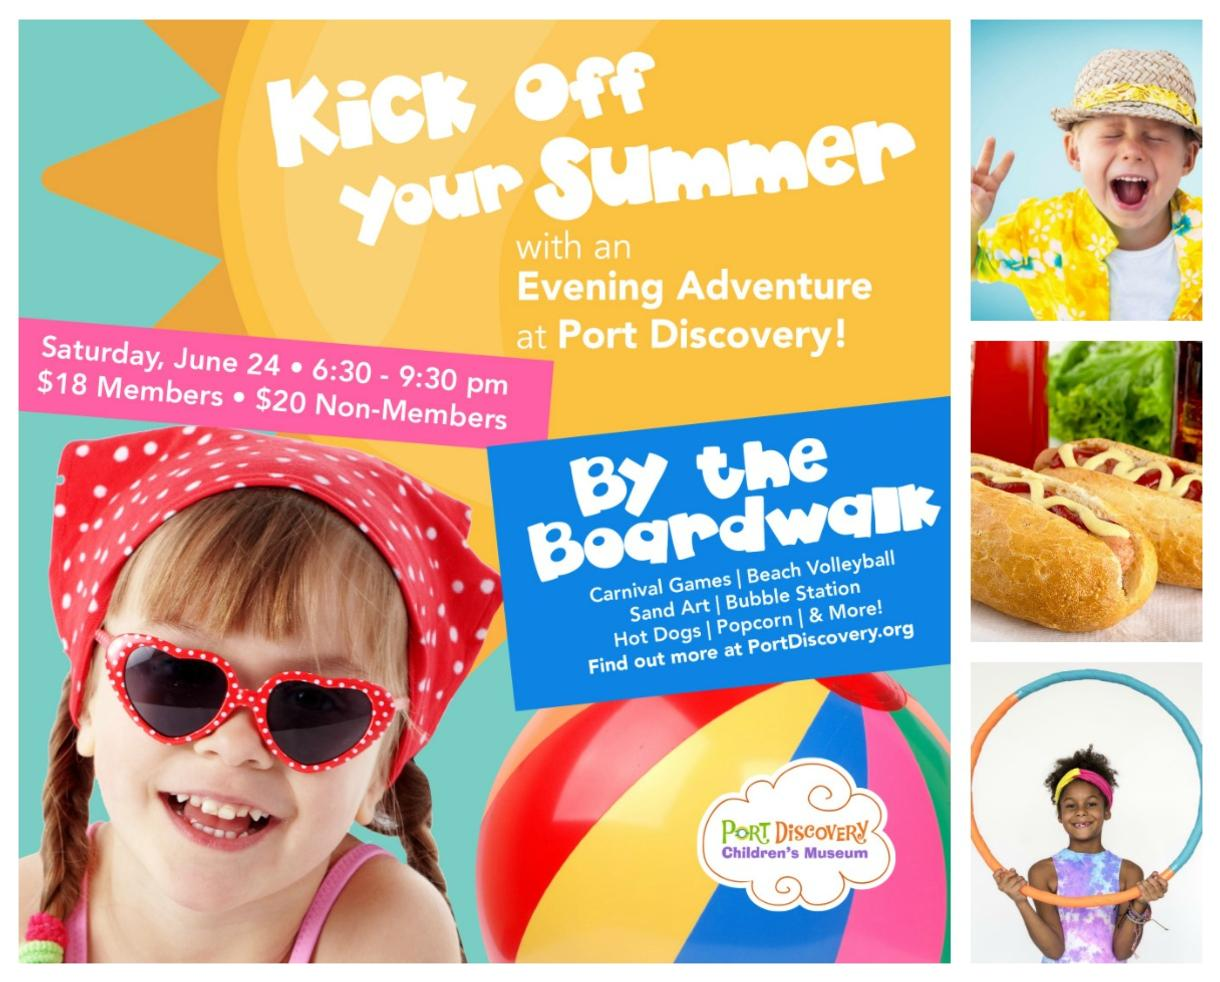 $16 for Port Discovery's By the Boardwalk Summer Evening Adventure - Saturday, June 24th (20% Off!)